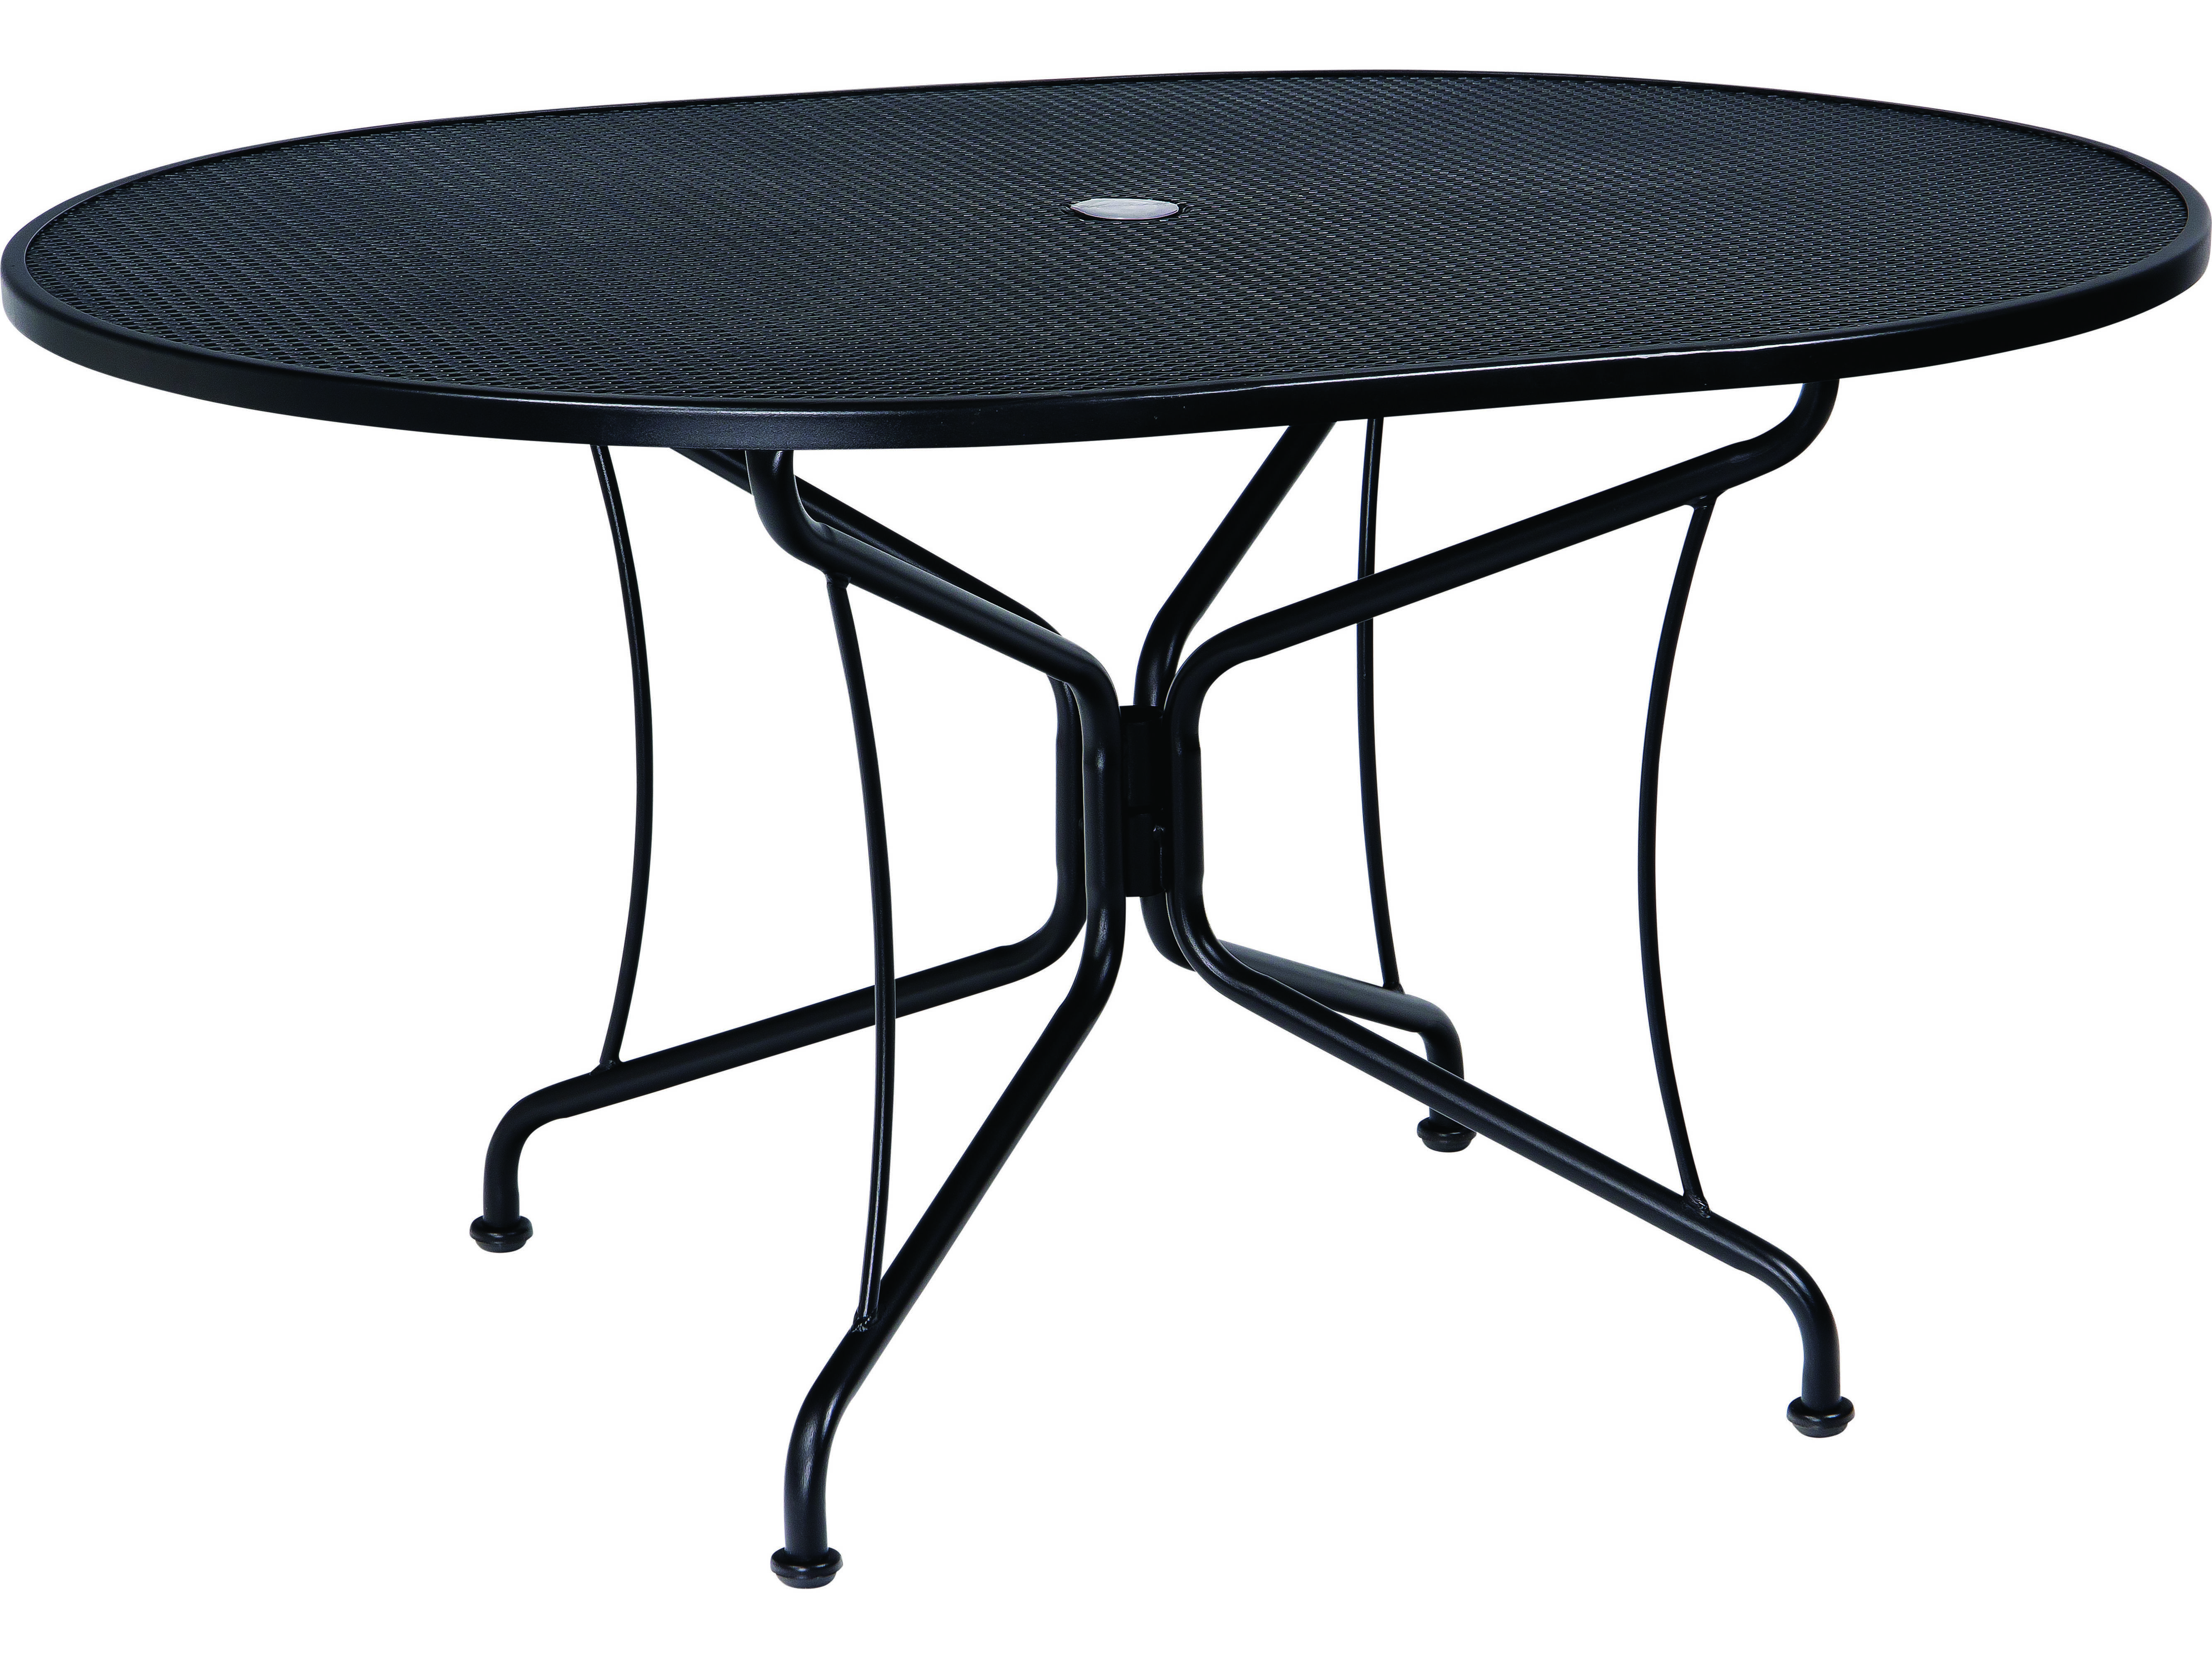 woodard wrought iron 54 x 42 oval 8 spoke table with umbrella hole 190303. Black Bedroom Furniture Sets. Home Design Ideas